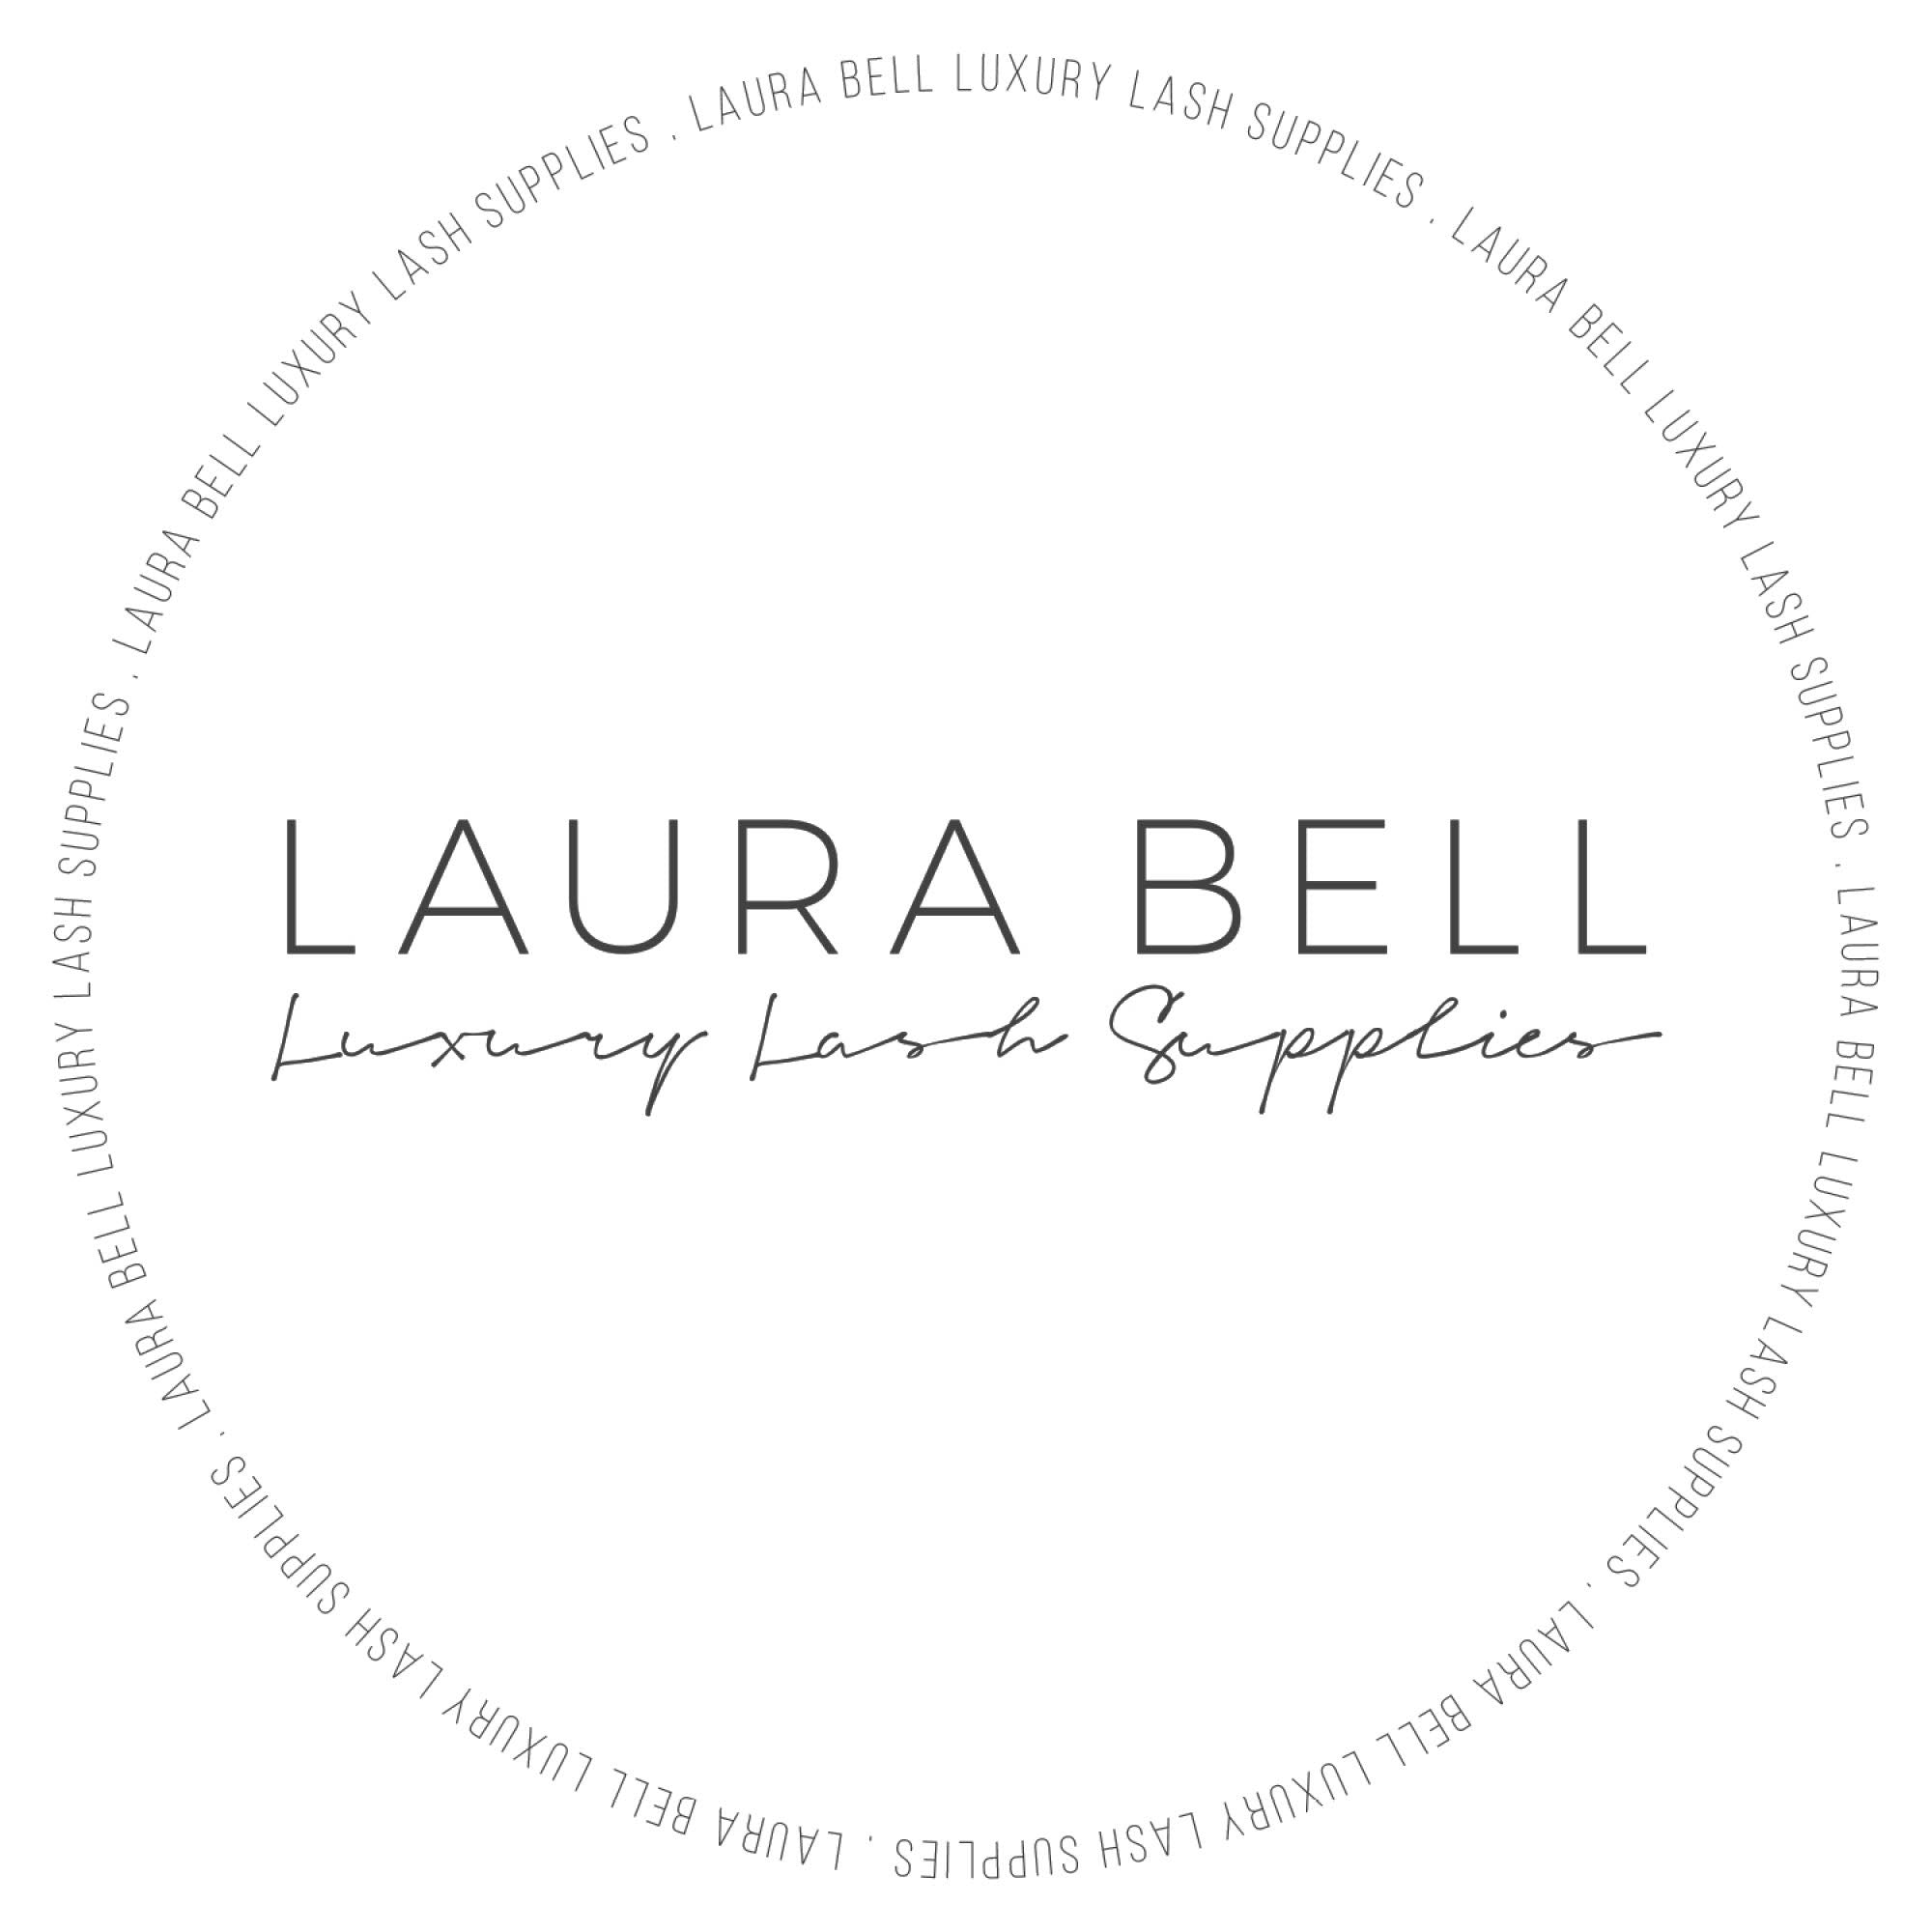 Classic Lash Student Kit Standard - Laura Bell Luxury Lash Supplies